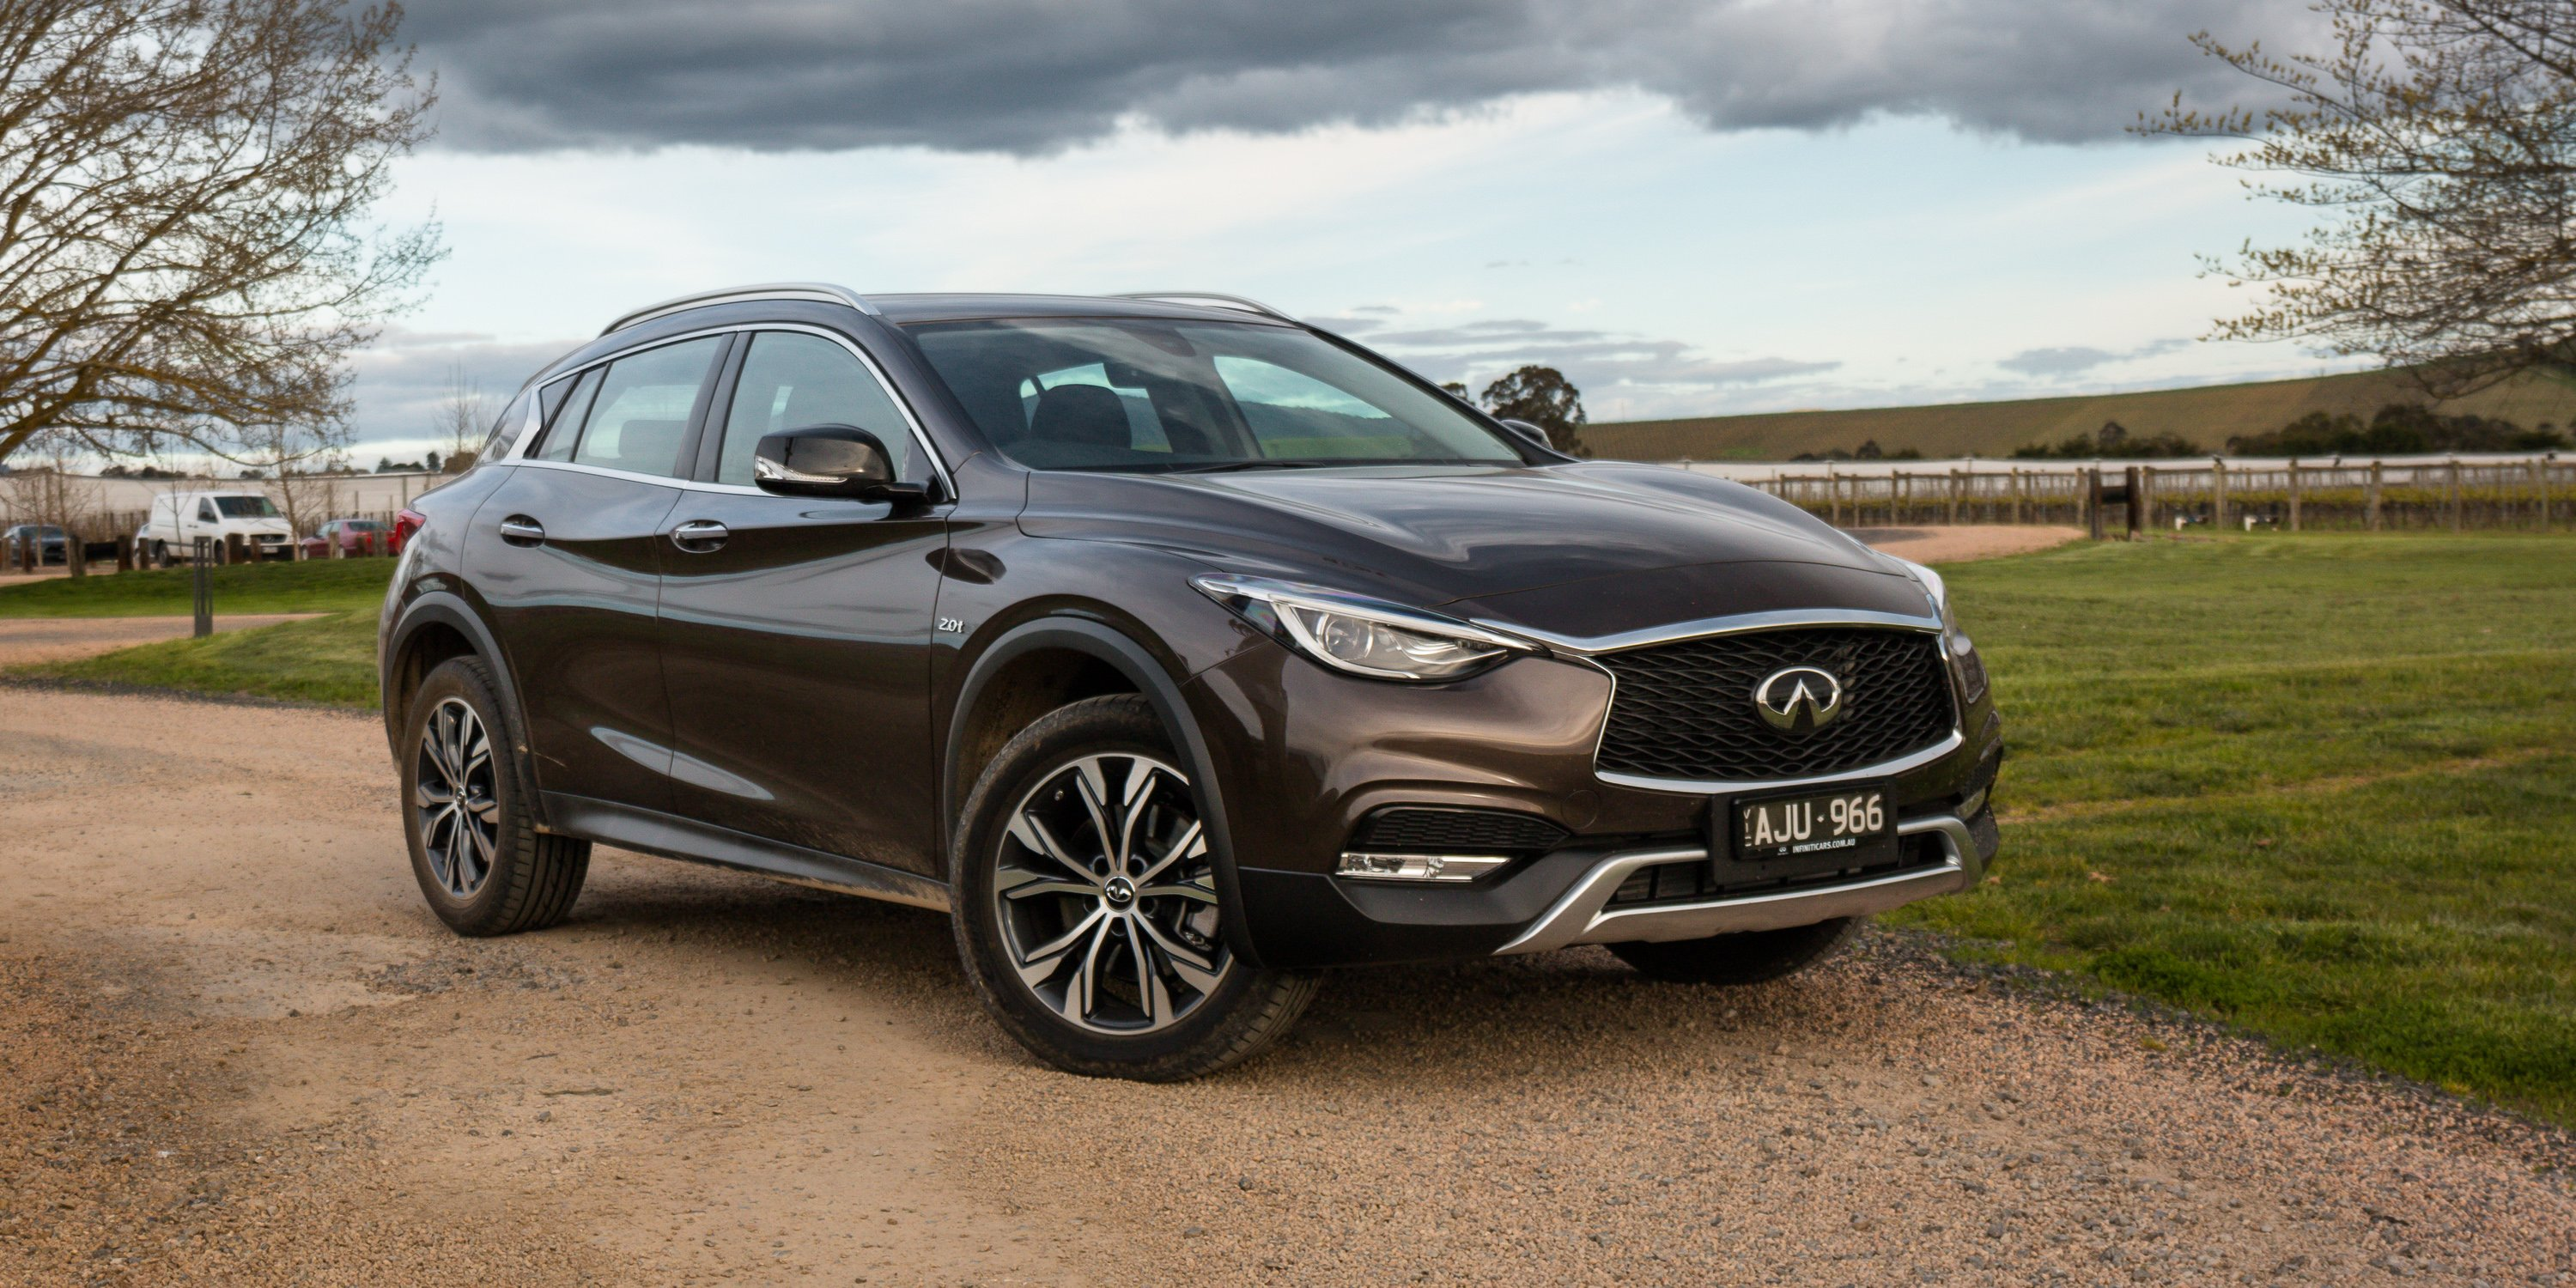 Luxury Sports Cars >> 2017 Infiniti QX30 Review - photos | CarAdvice